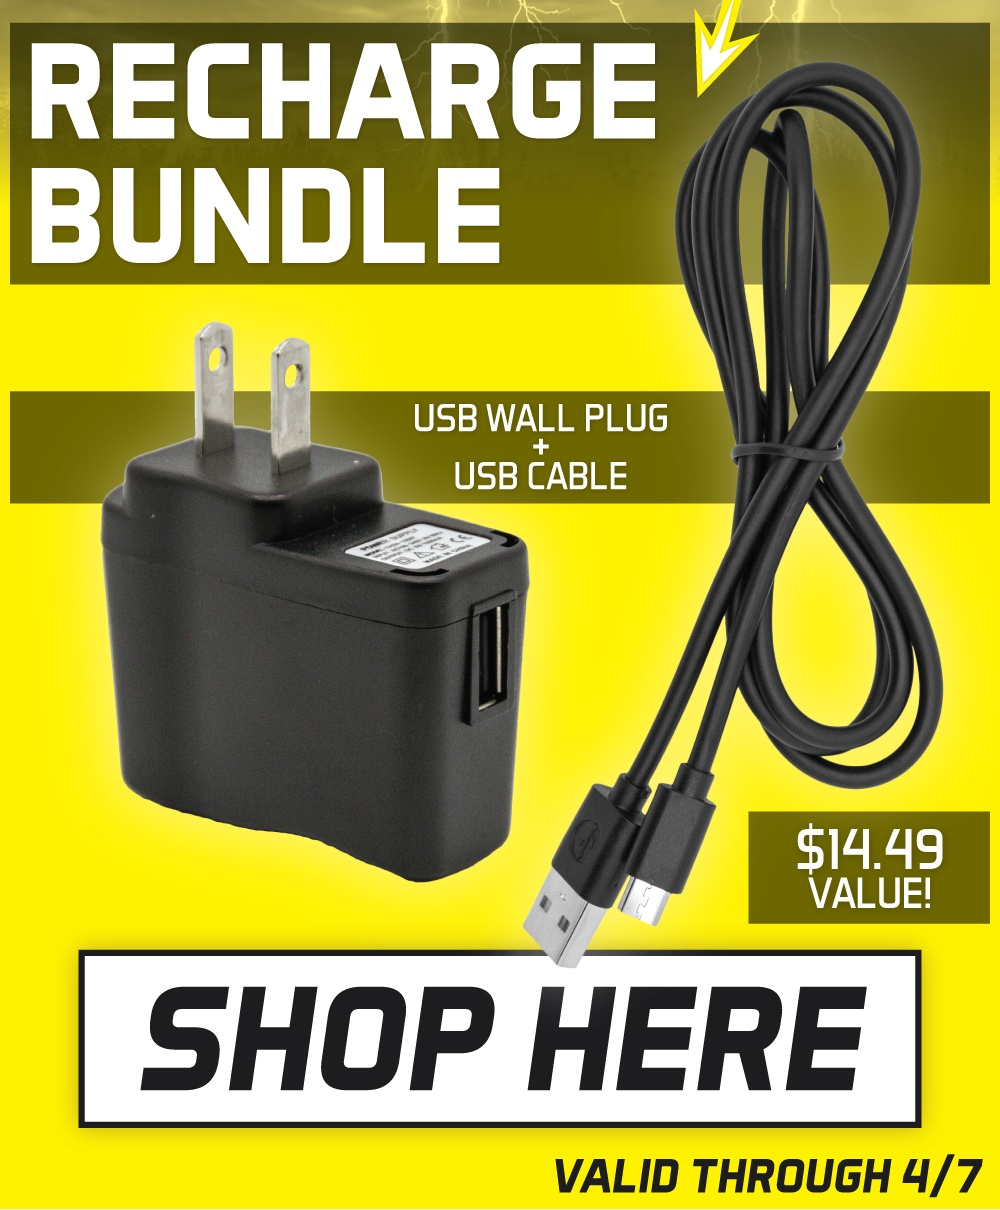 rechargeable battery bundle